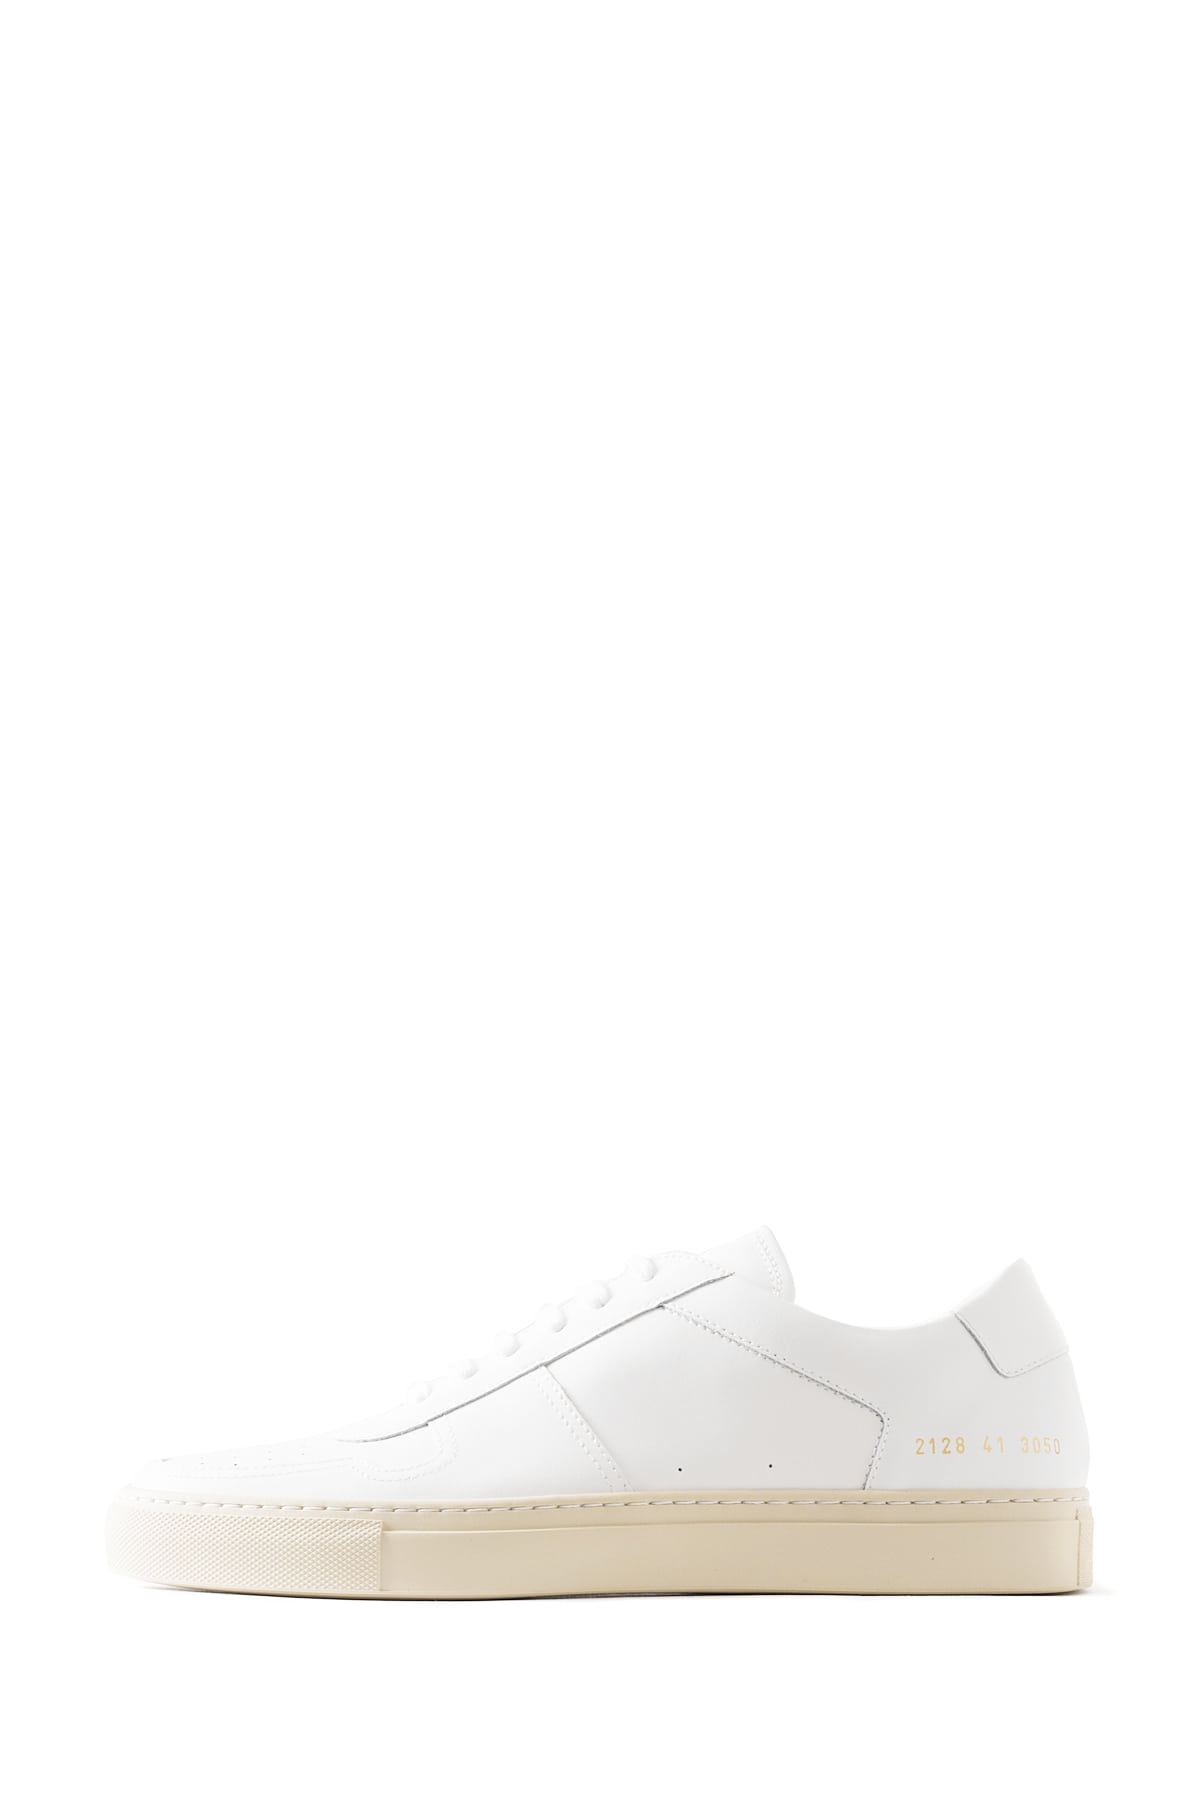 Common Projects : Bball Low 2128 (White)